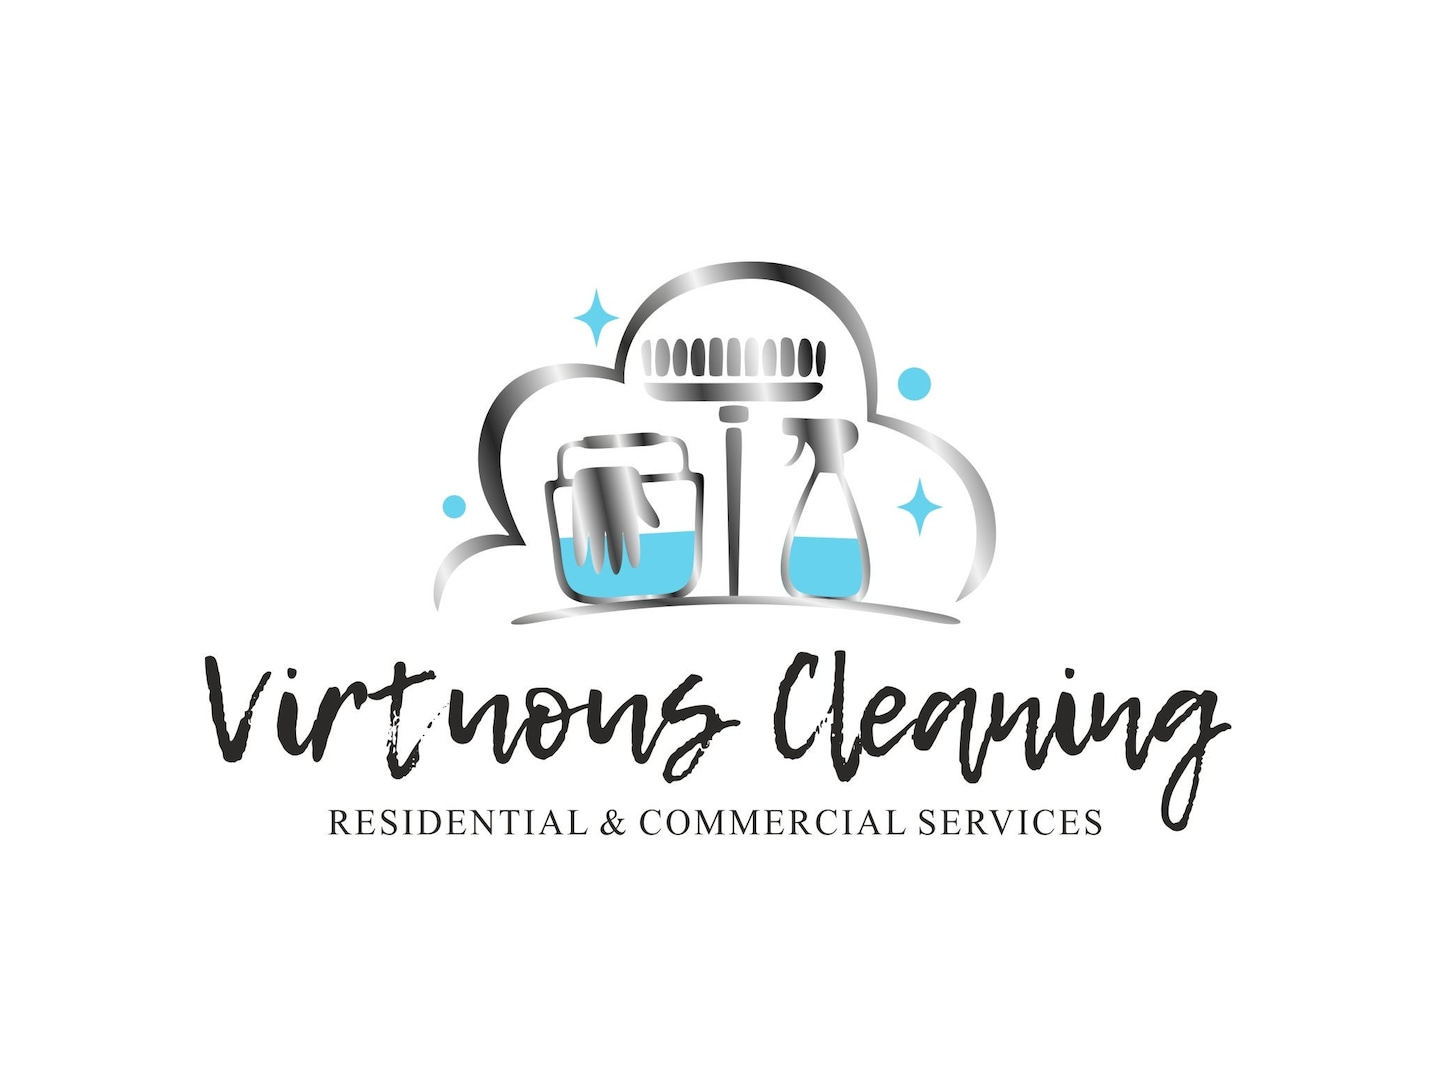 Virtuous Cleaning